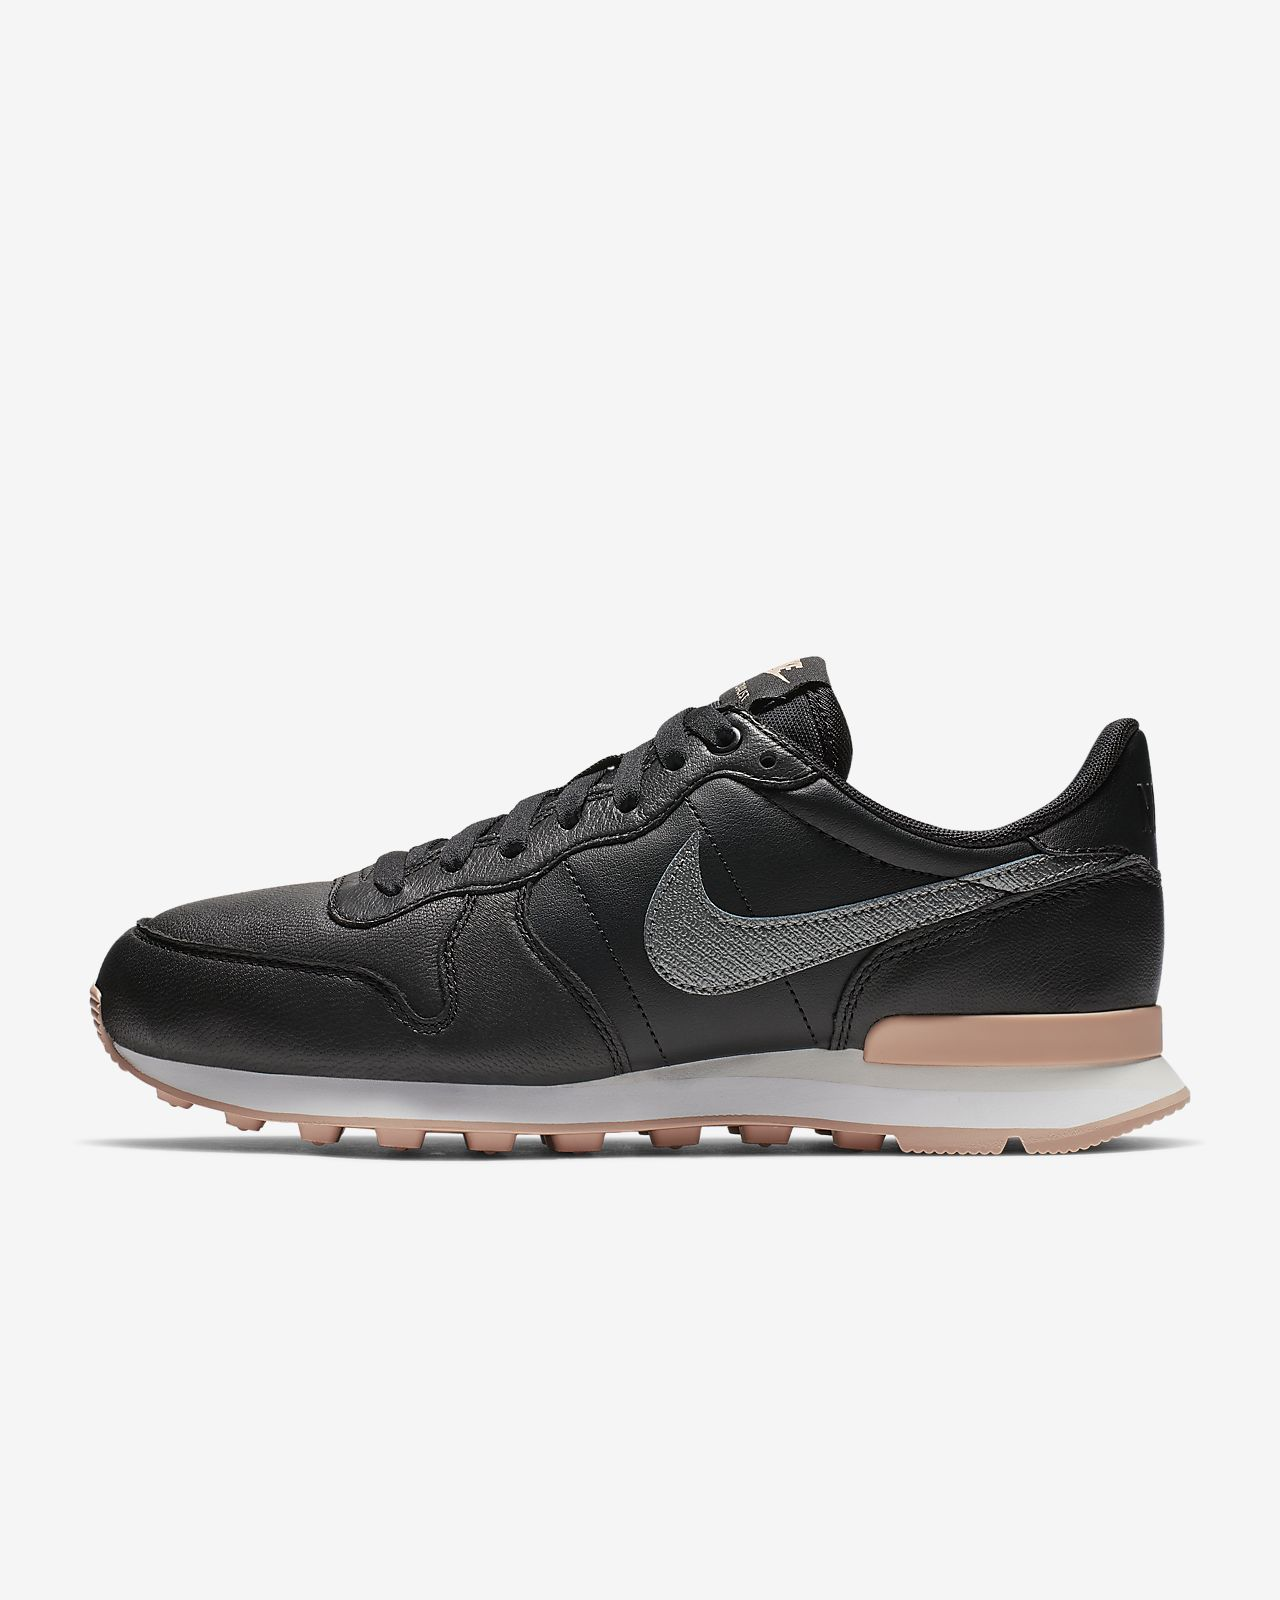 buy online b4052 6cc26 Low Resolution Chaussure Nike Internationalist Premium pour Femme Chaussure  Nike Internationalist Premium pour Femme